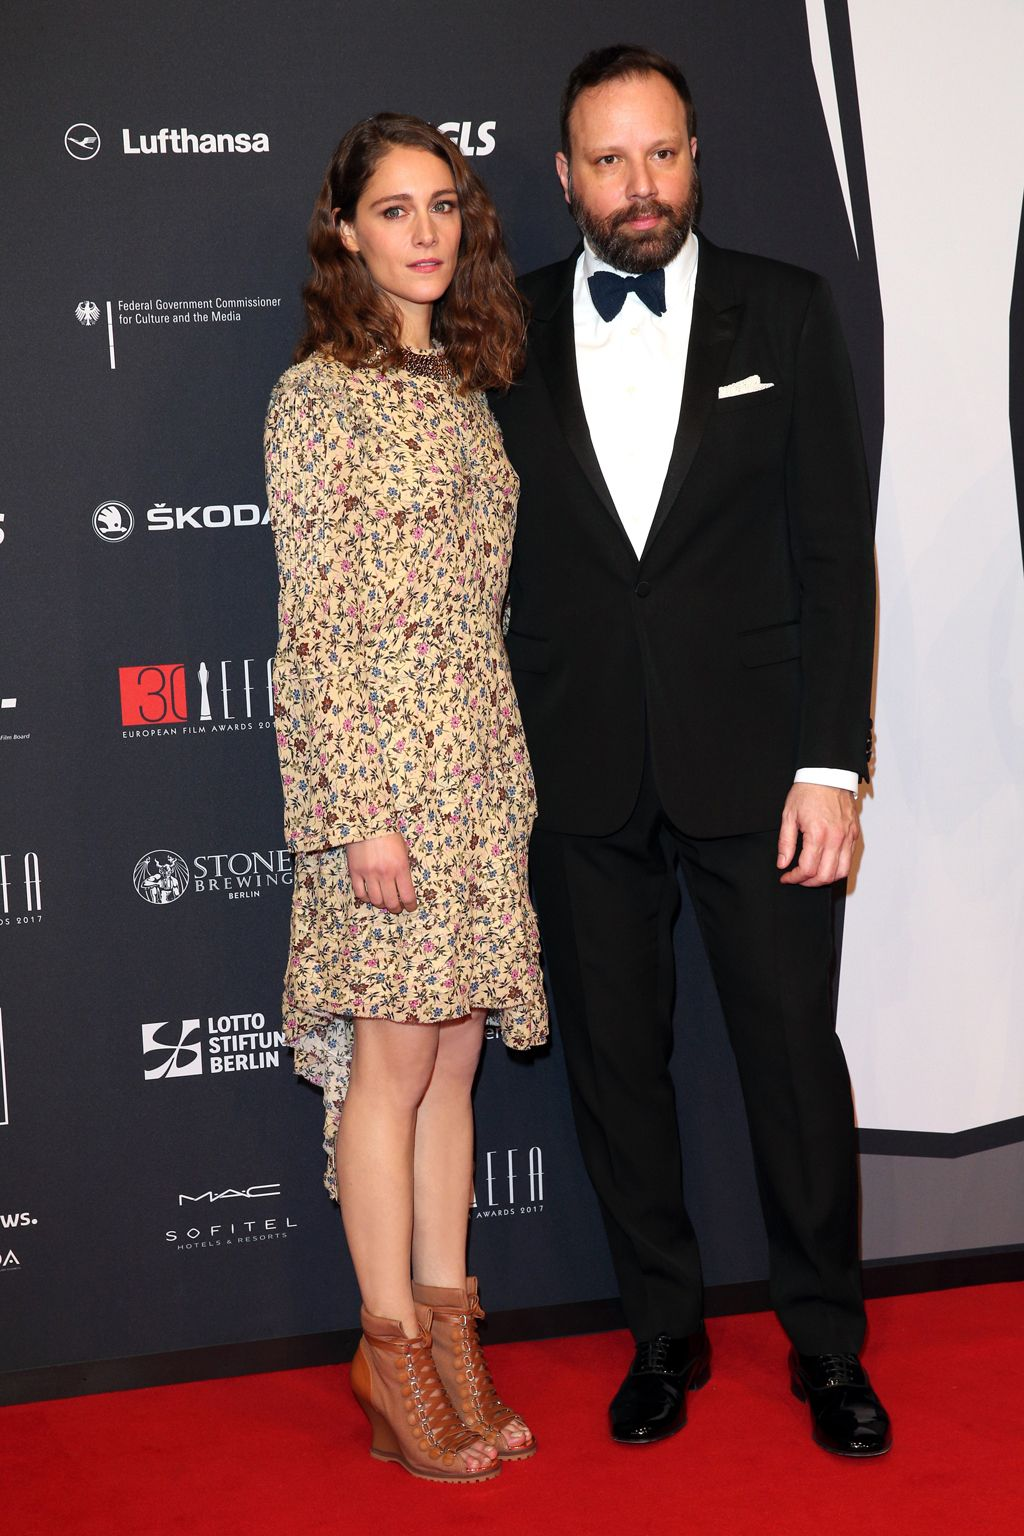 Actress Ariane Labed attended the 30th European Film Awards